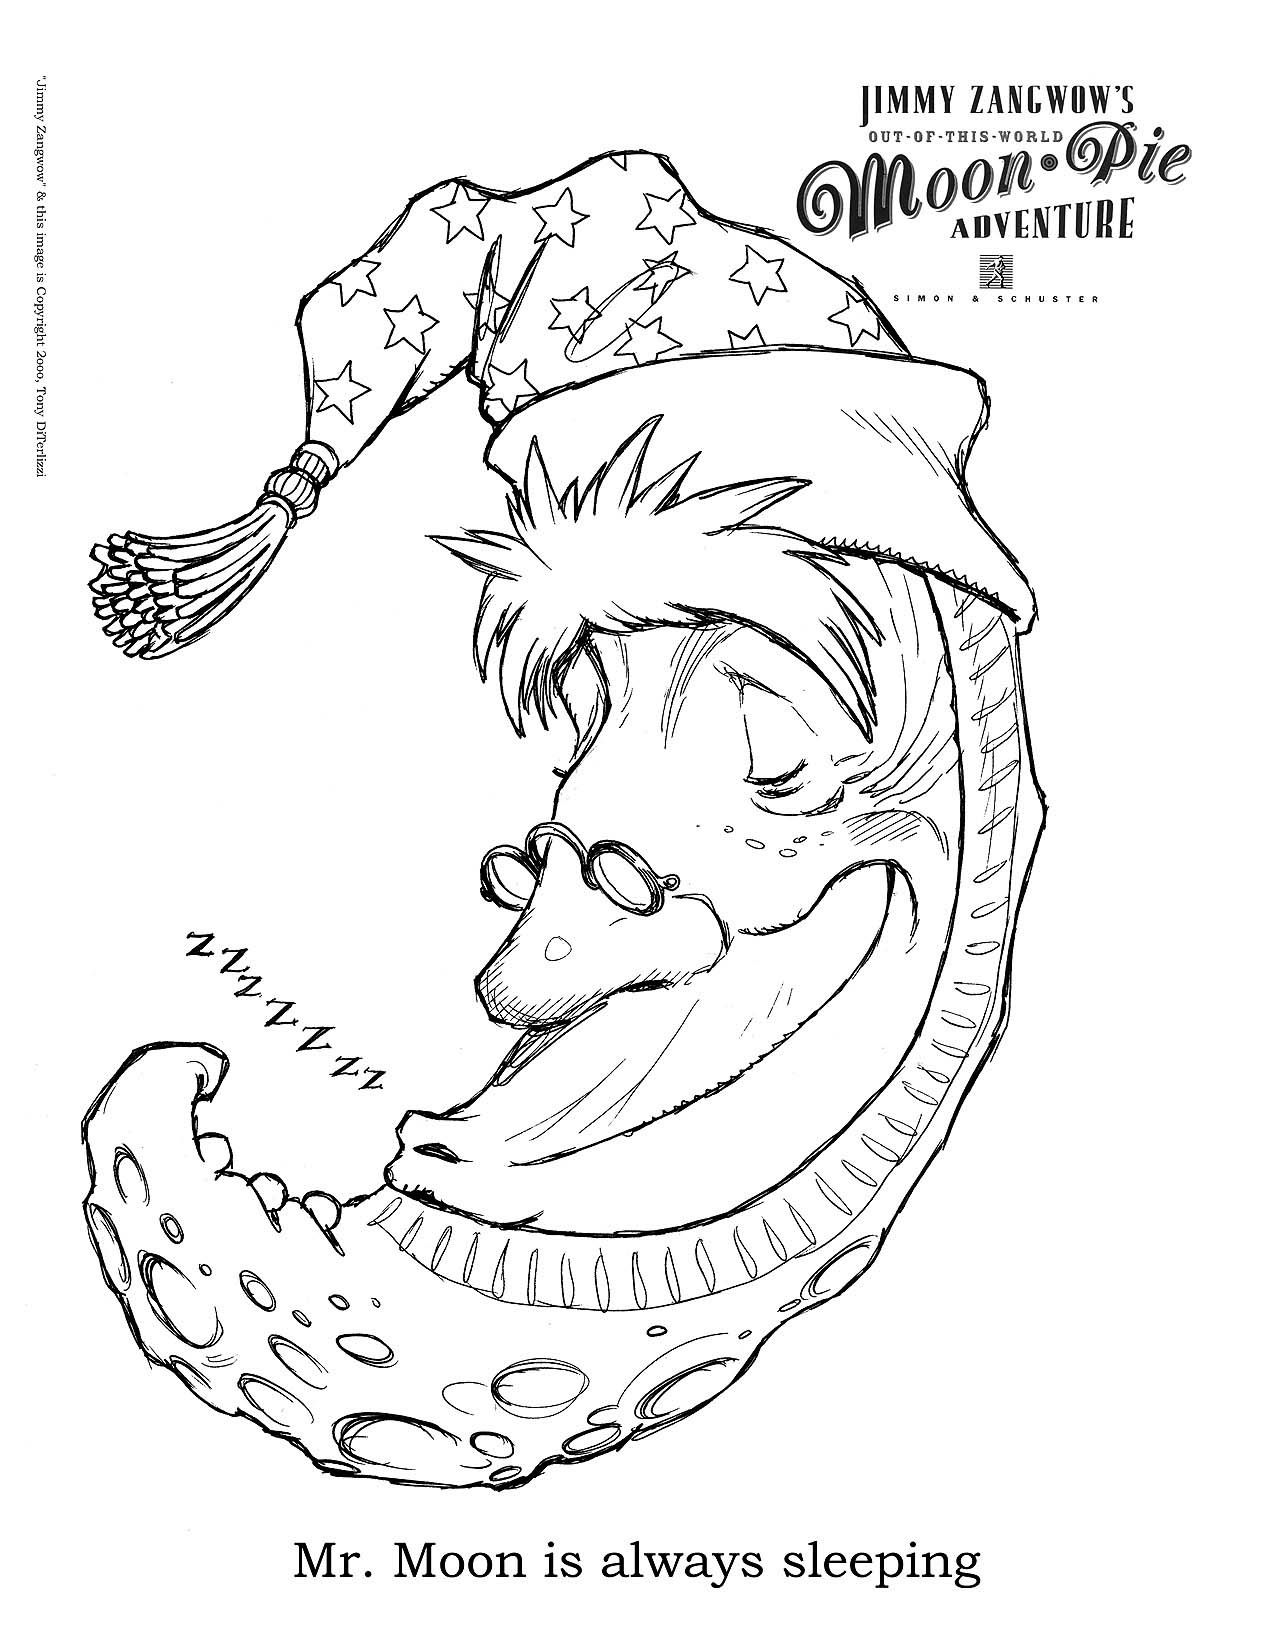 Coloring Pages Of Moon Pie Chinese Moon Festival Coloring